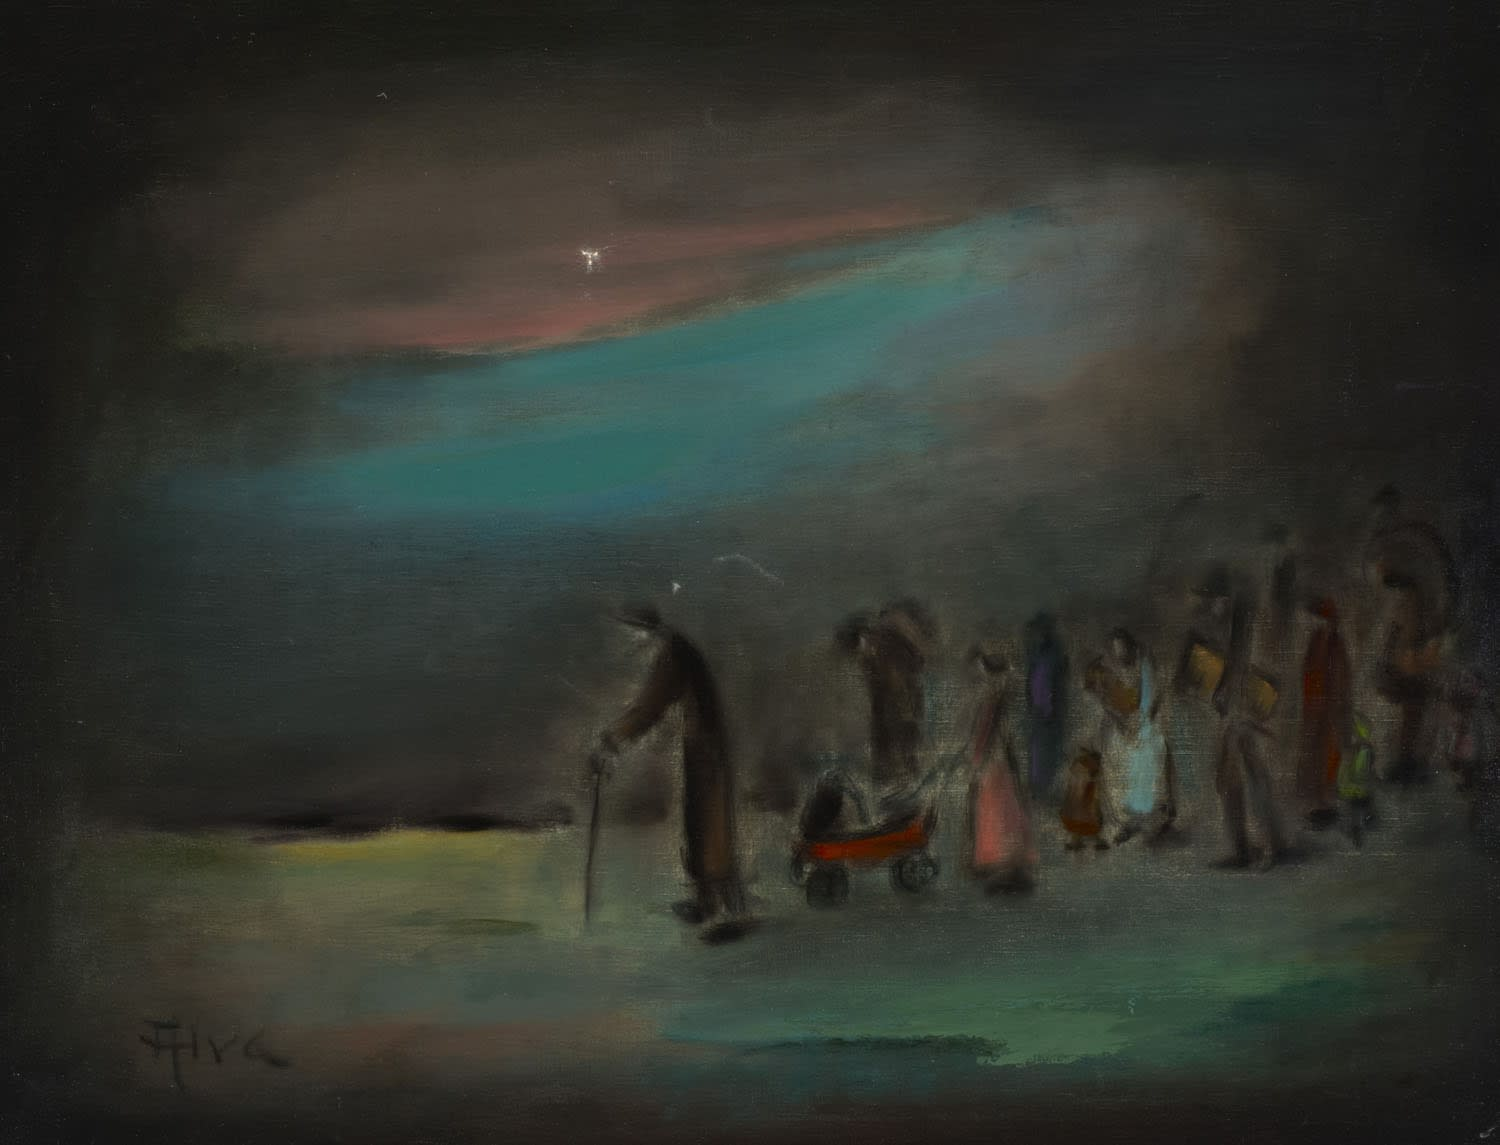 Siegfried Solomon Alweiss 'Alva' (1901-1973) Exodus n.d. Oil on canvas 69.8 x 90 cm Ben Uri Collection © Alva estate To see and discover more about this artist click here